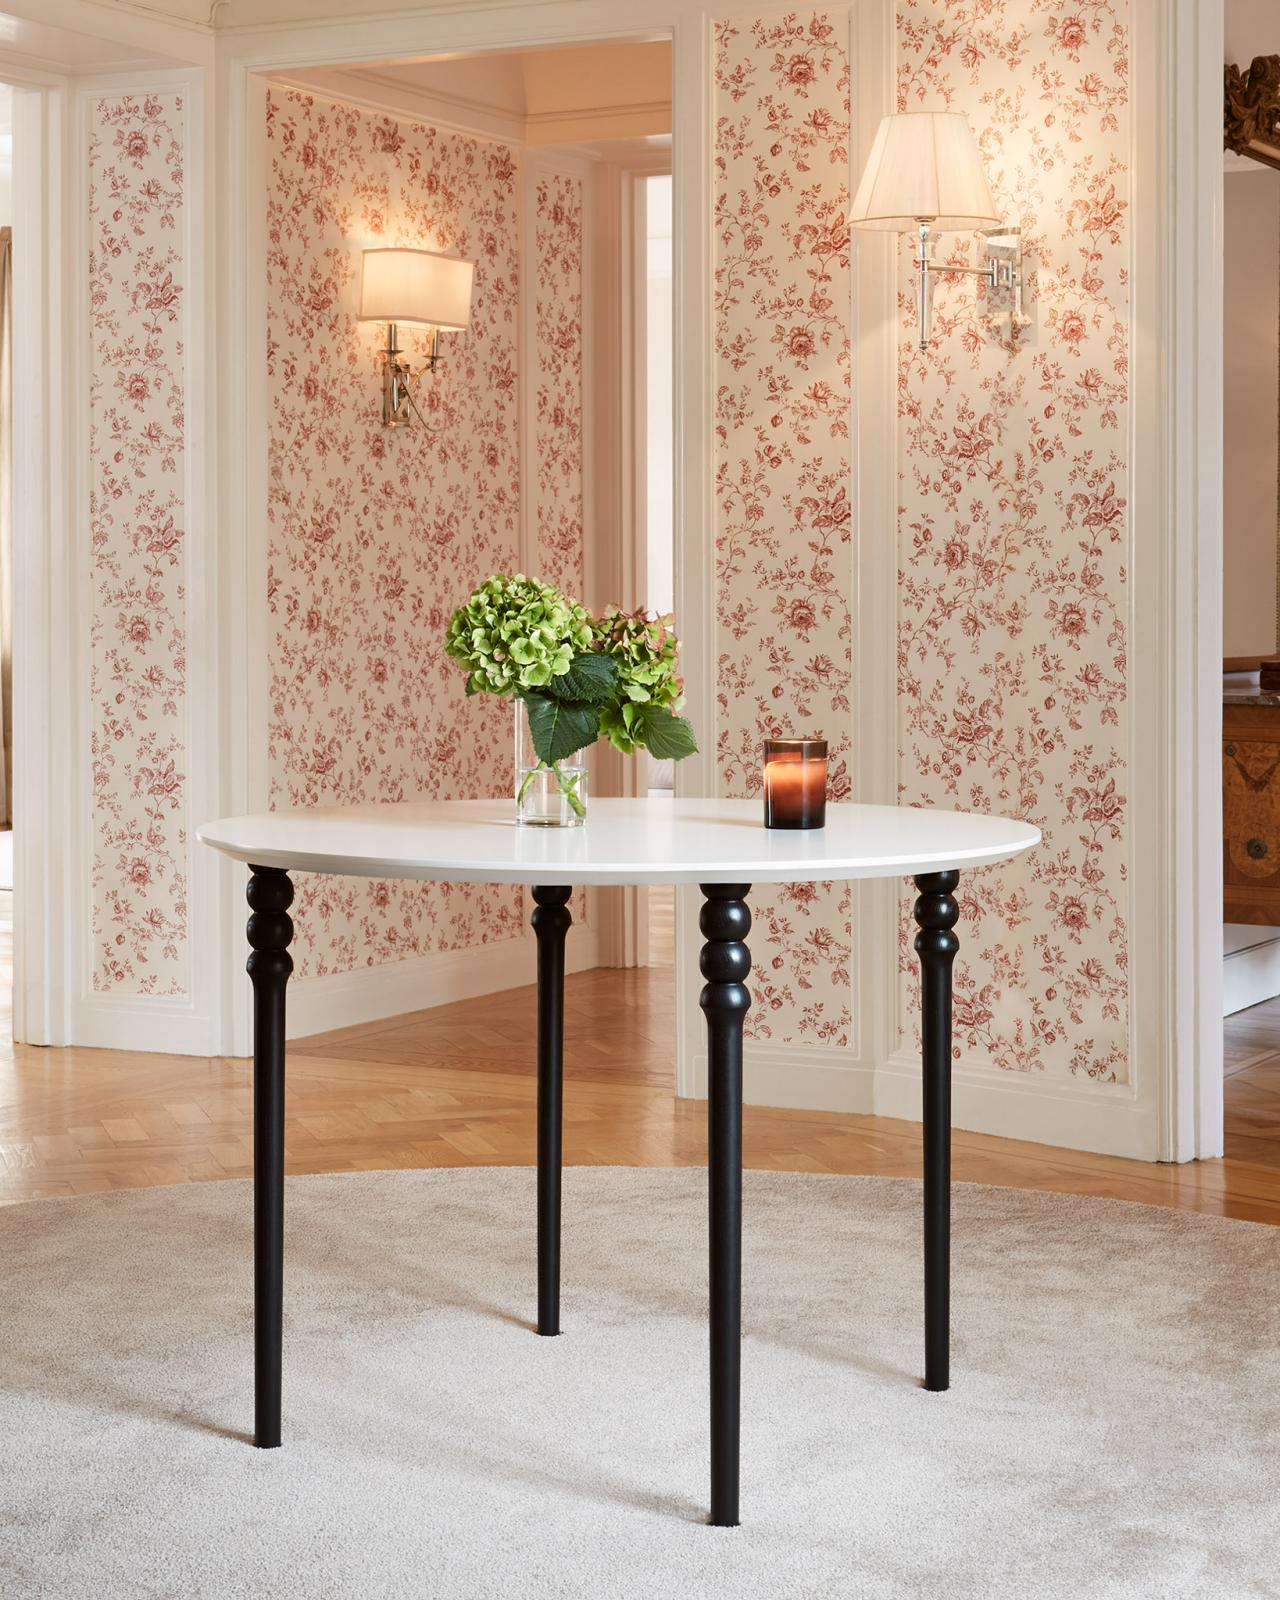 Where Can You Buy Table Legs DIY Network Blog Made Remade DIY - How to make metal table legs